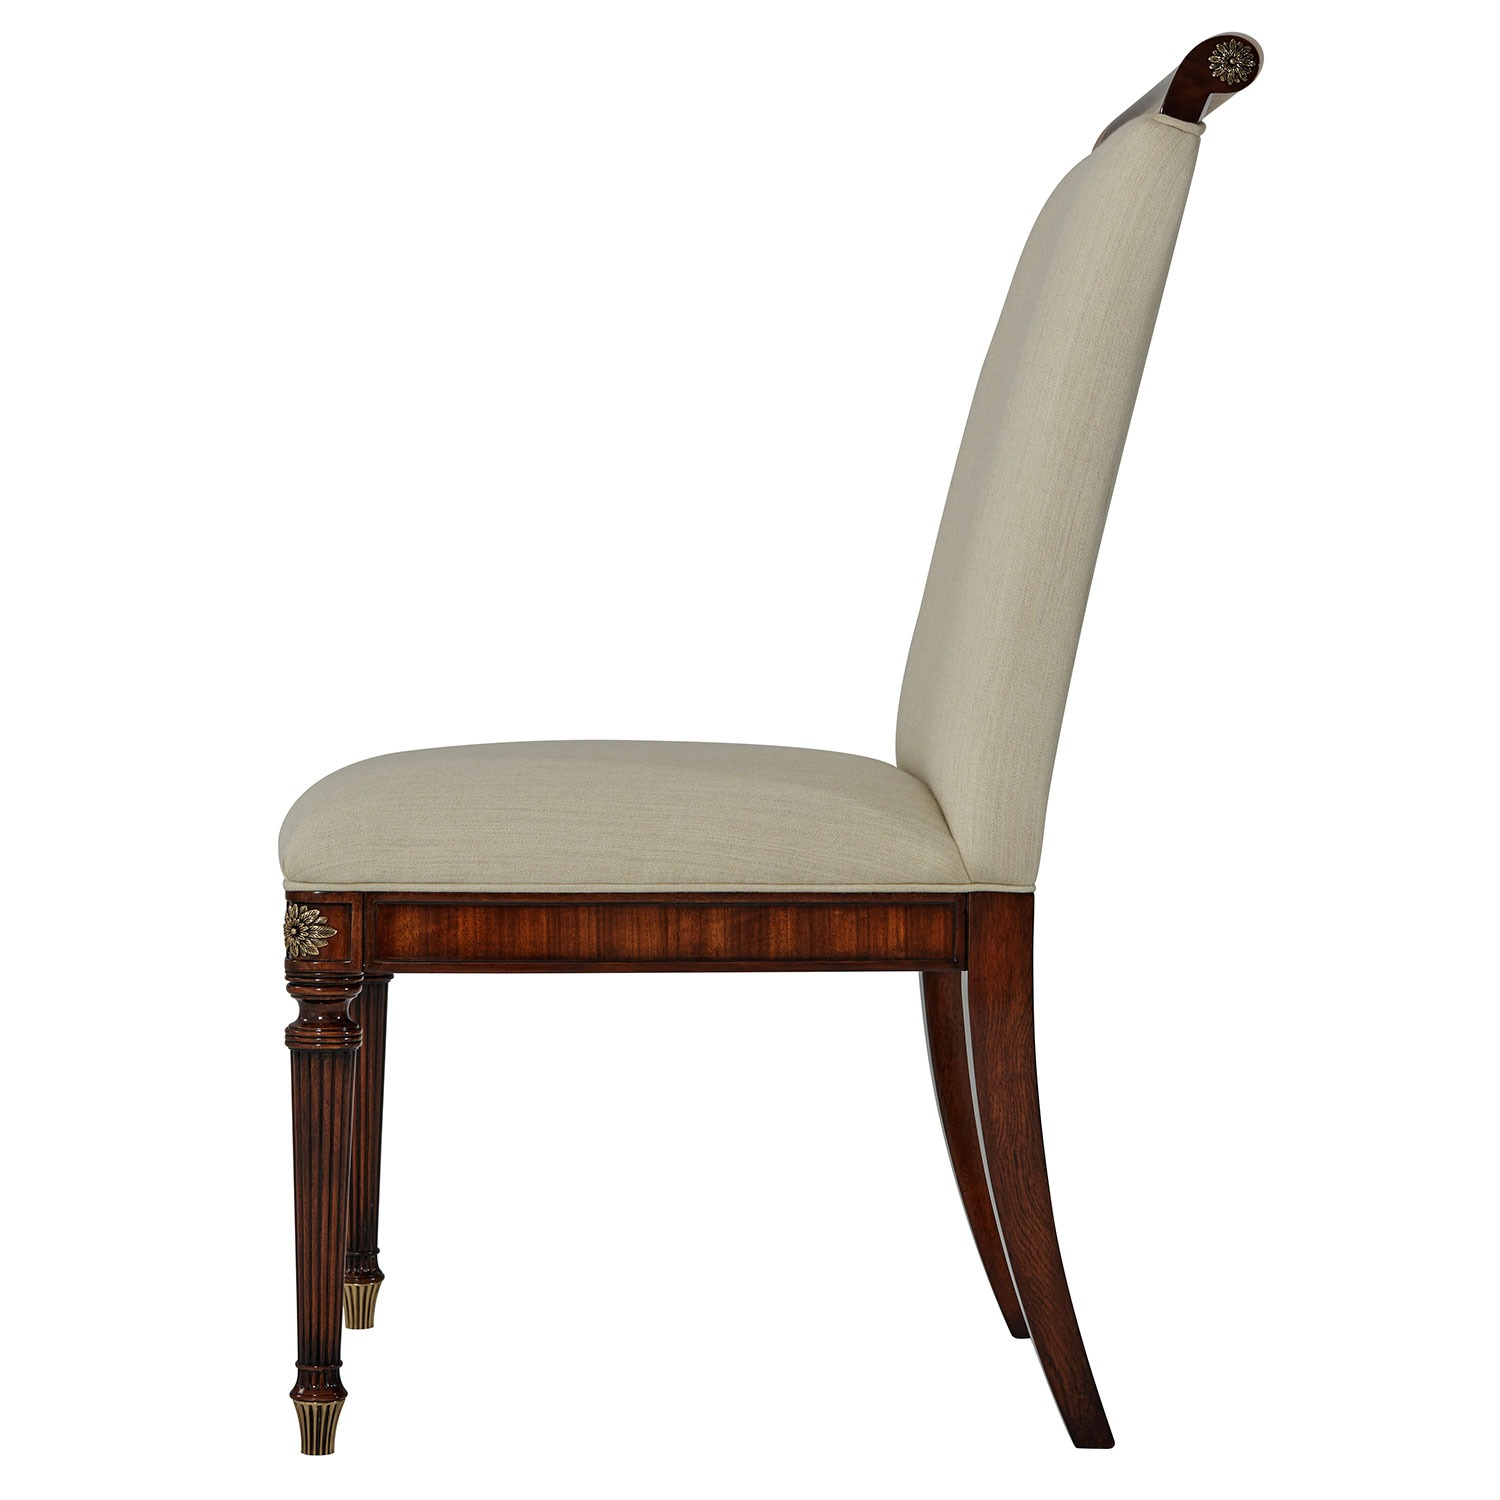 Upholstered Side Chair with Floral Brass Inlay